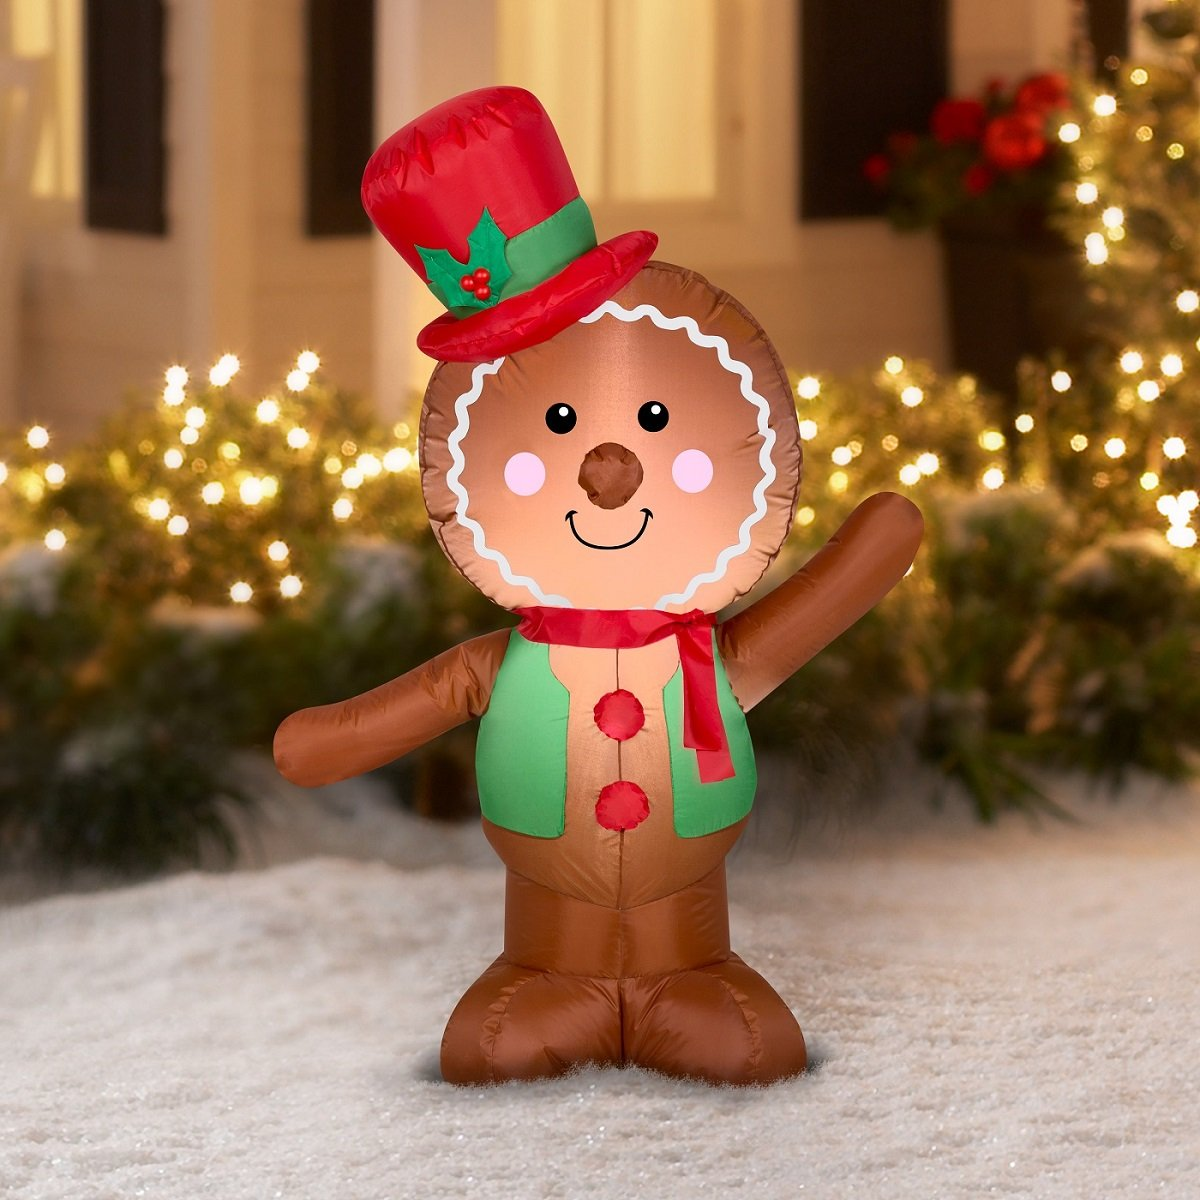 Garden decorations for sale - Christmas Inflatable Led Gingerbread Man Airblown Decoration By Gemmy